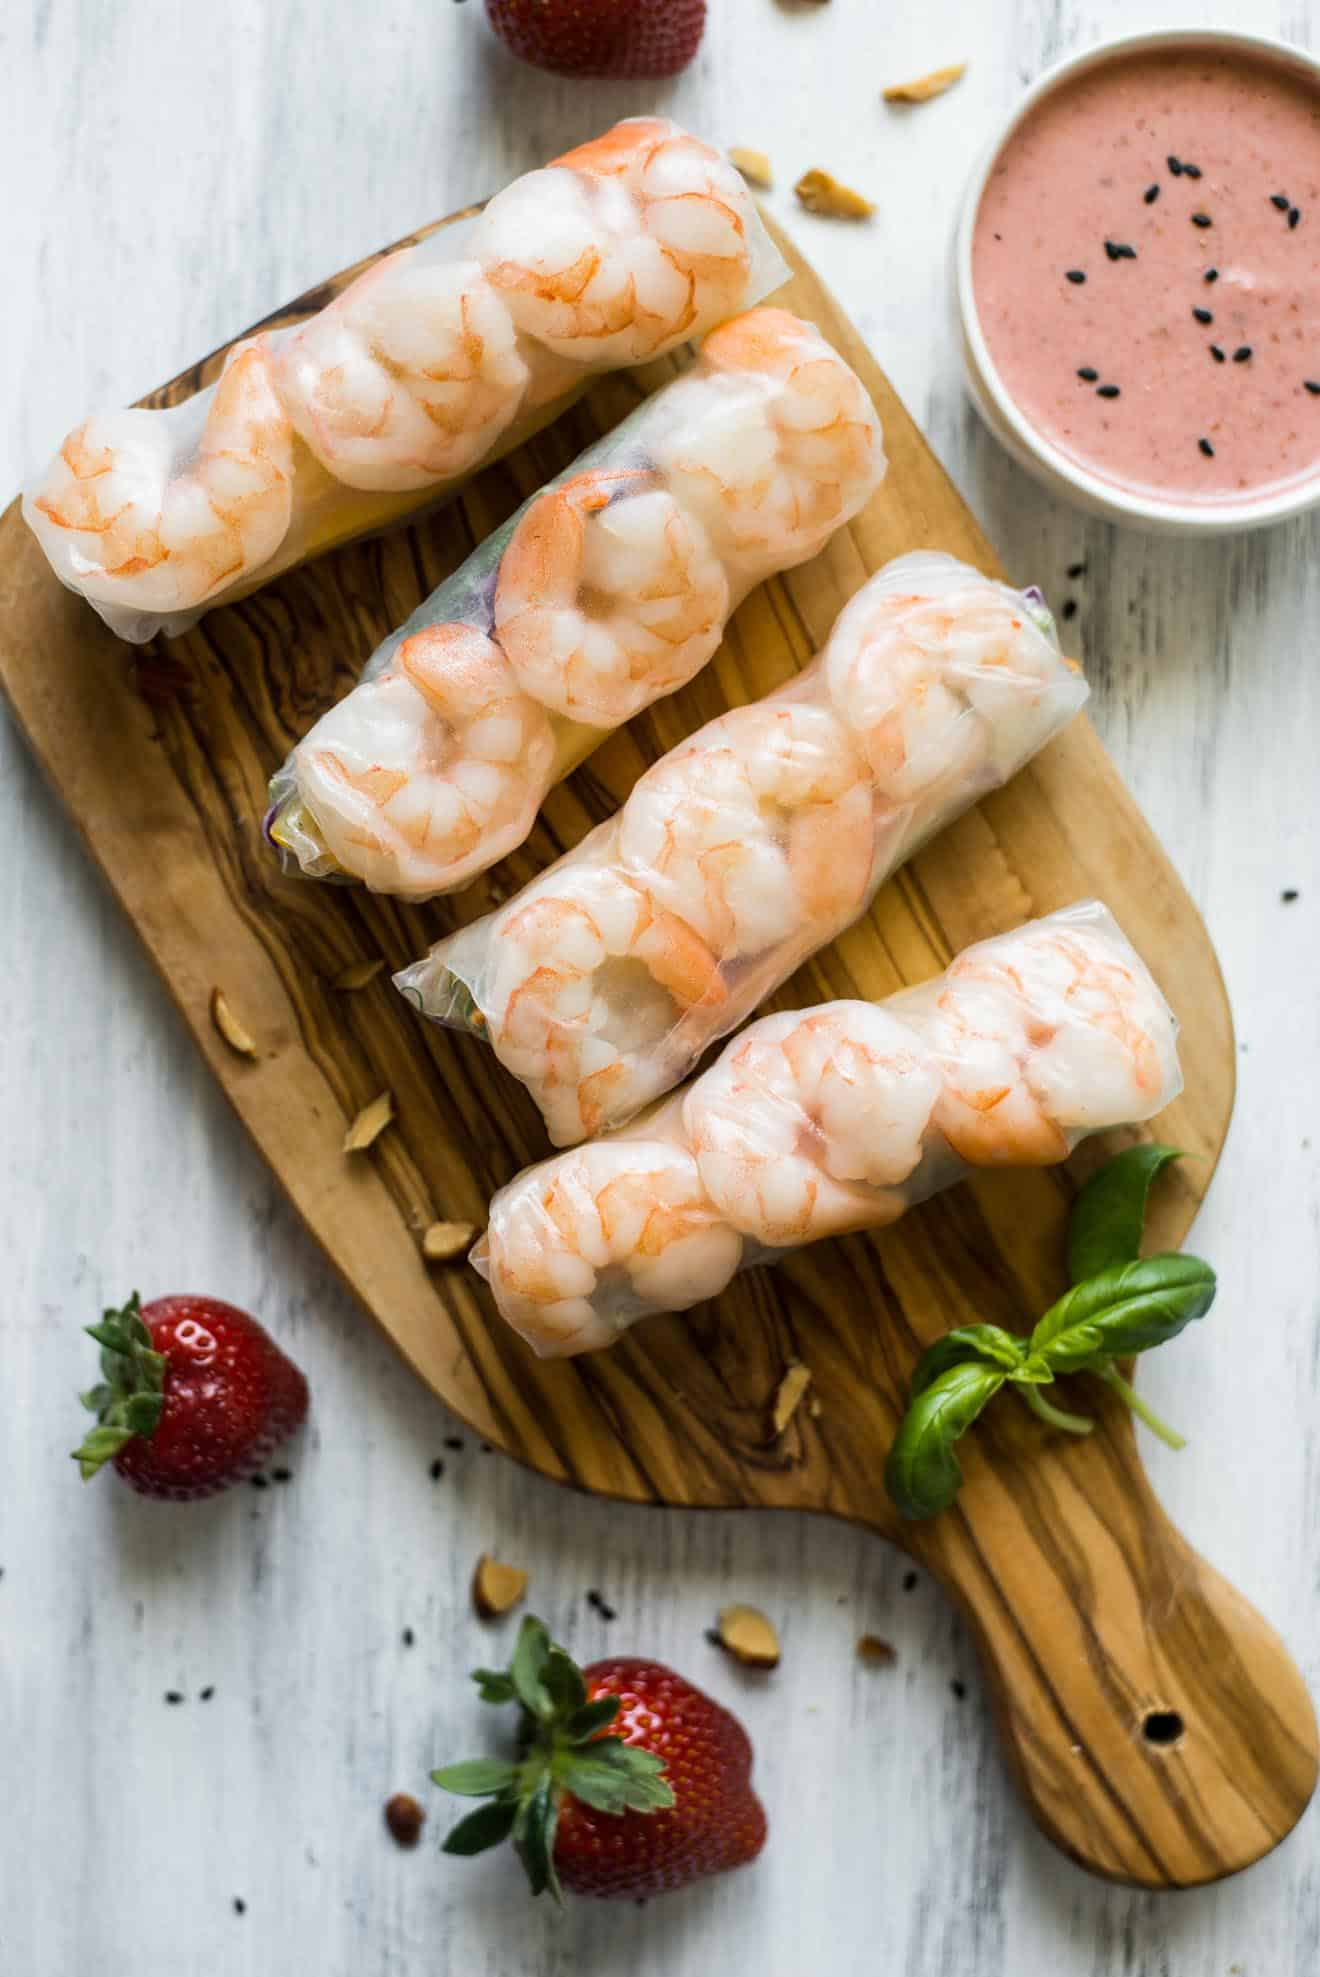 Shrimp Spring Rolls with Strawberry Almond Sauce - easy, healthy summer appetizer ready in 30 minutes! by @healthynibs